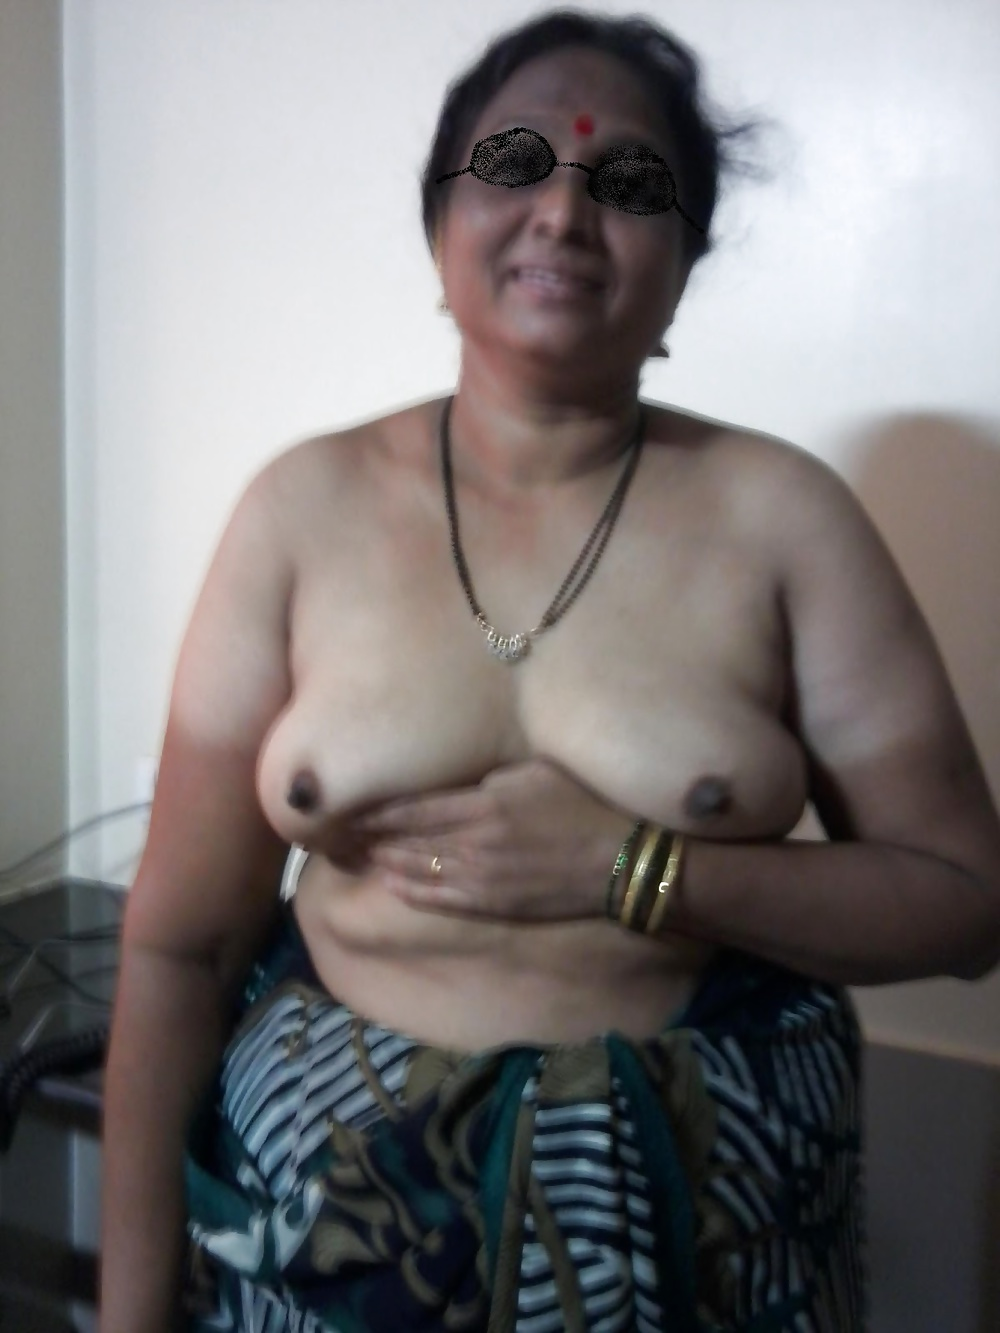 turk woman pictures sex